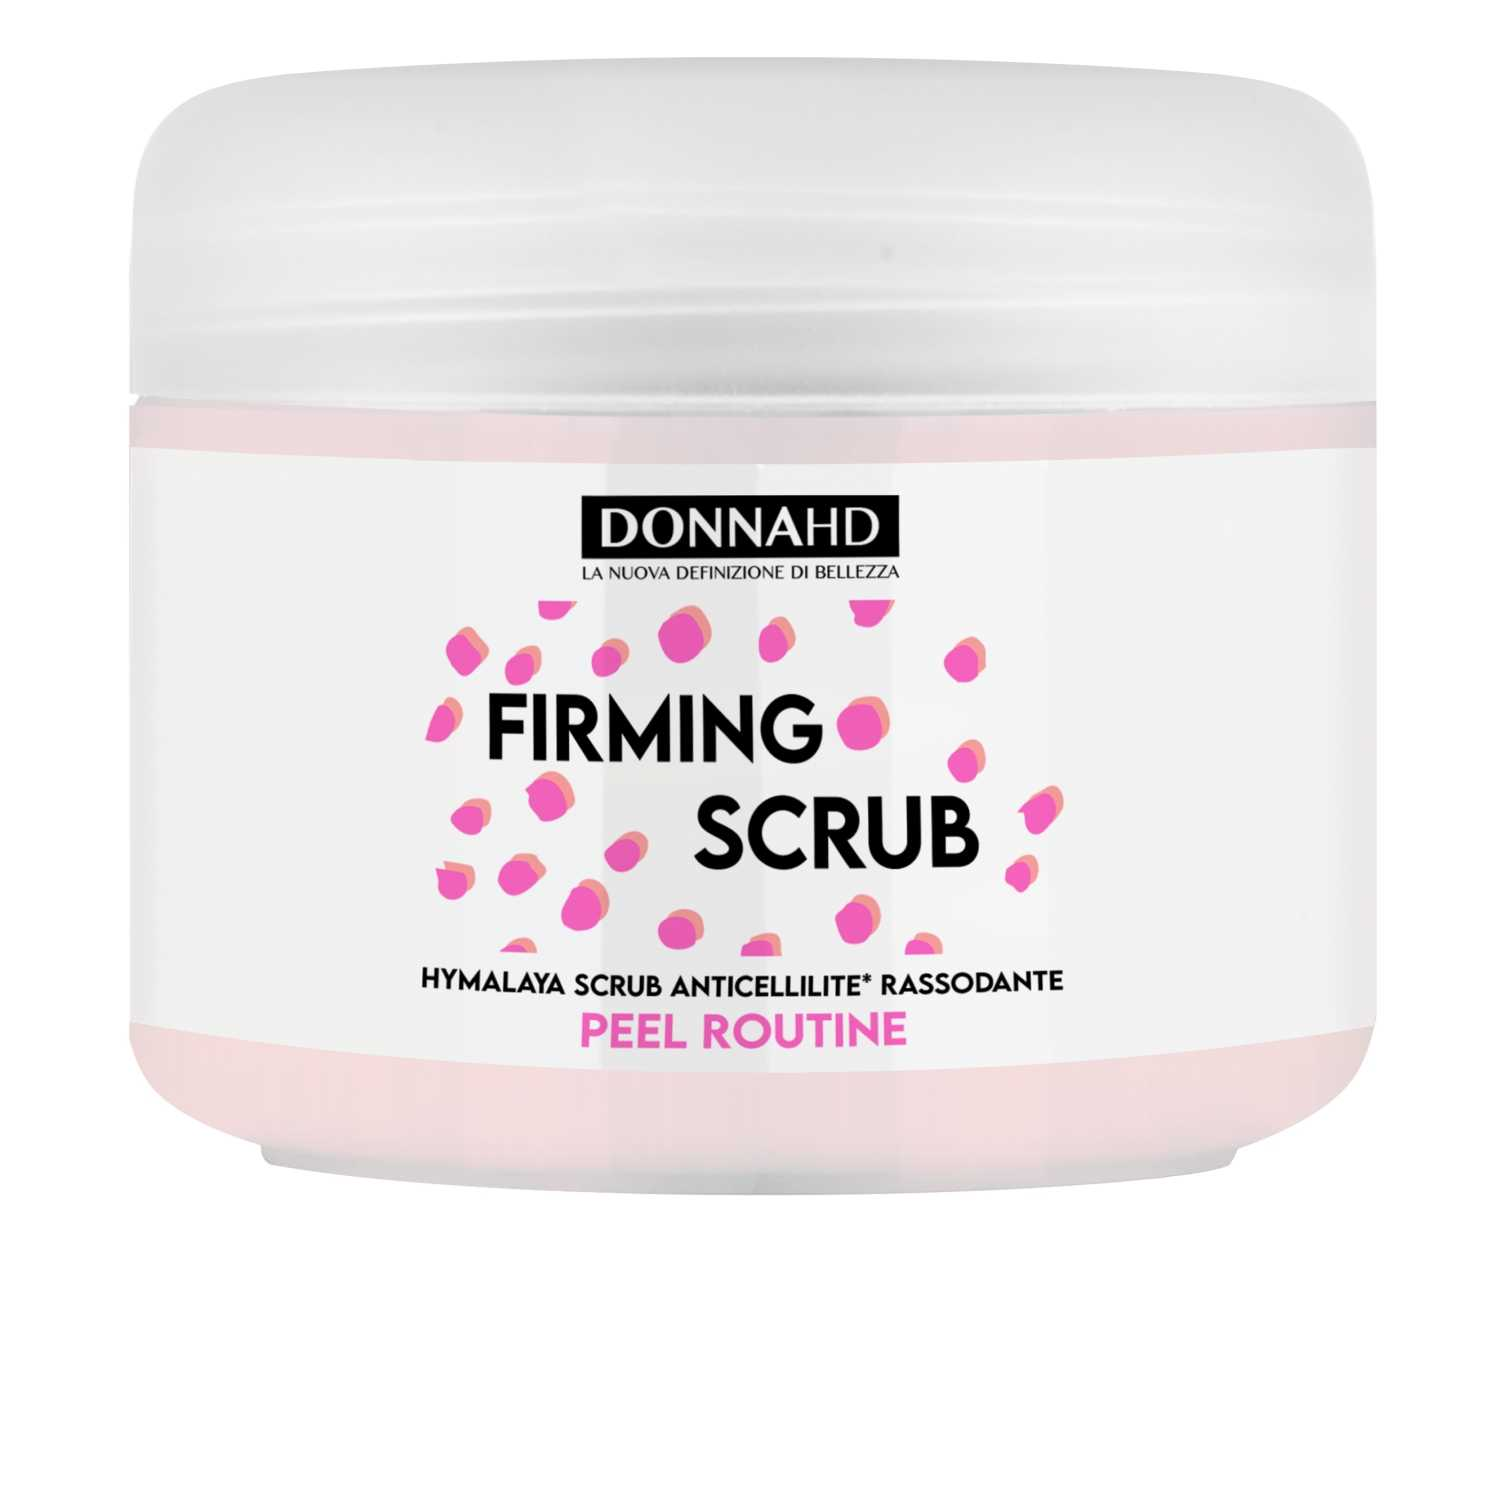 FIRMING SCRUB 500ML